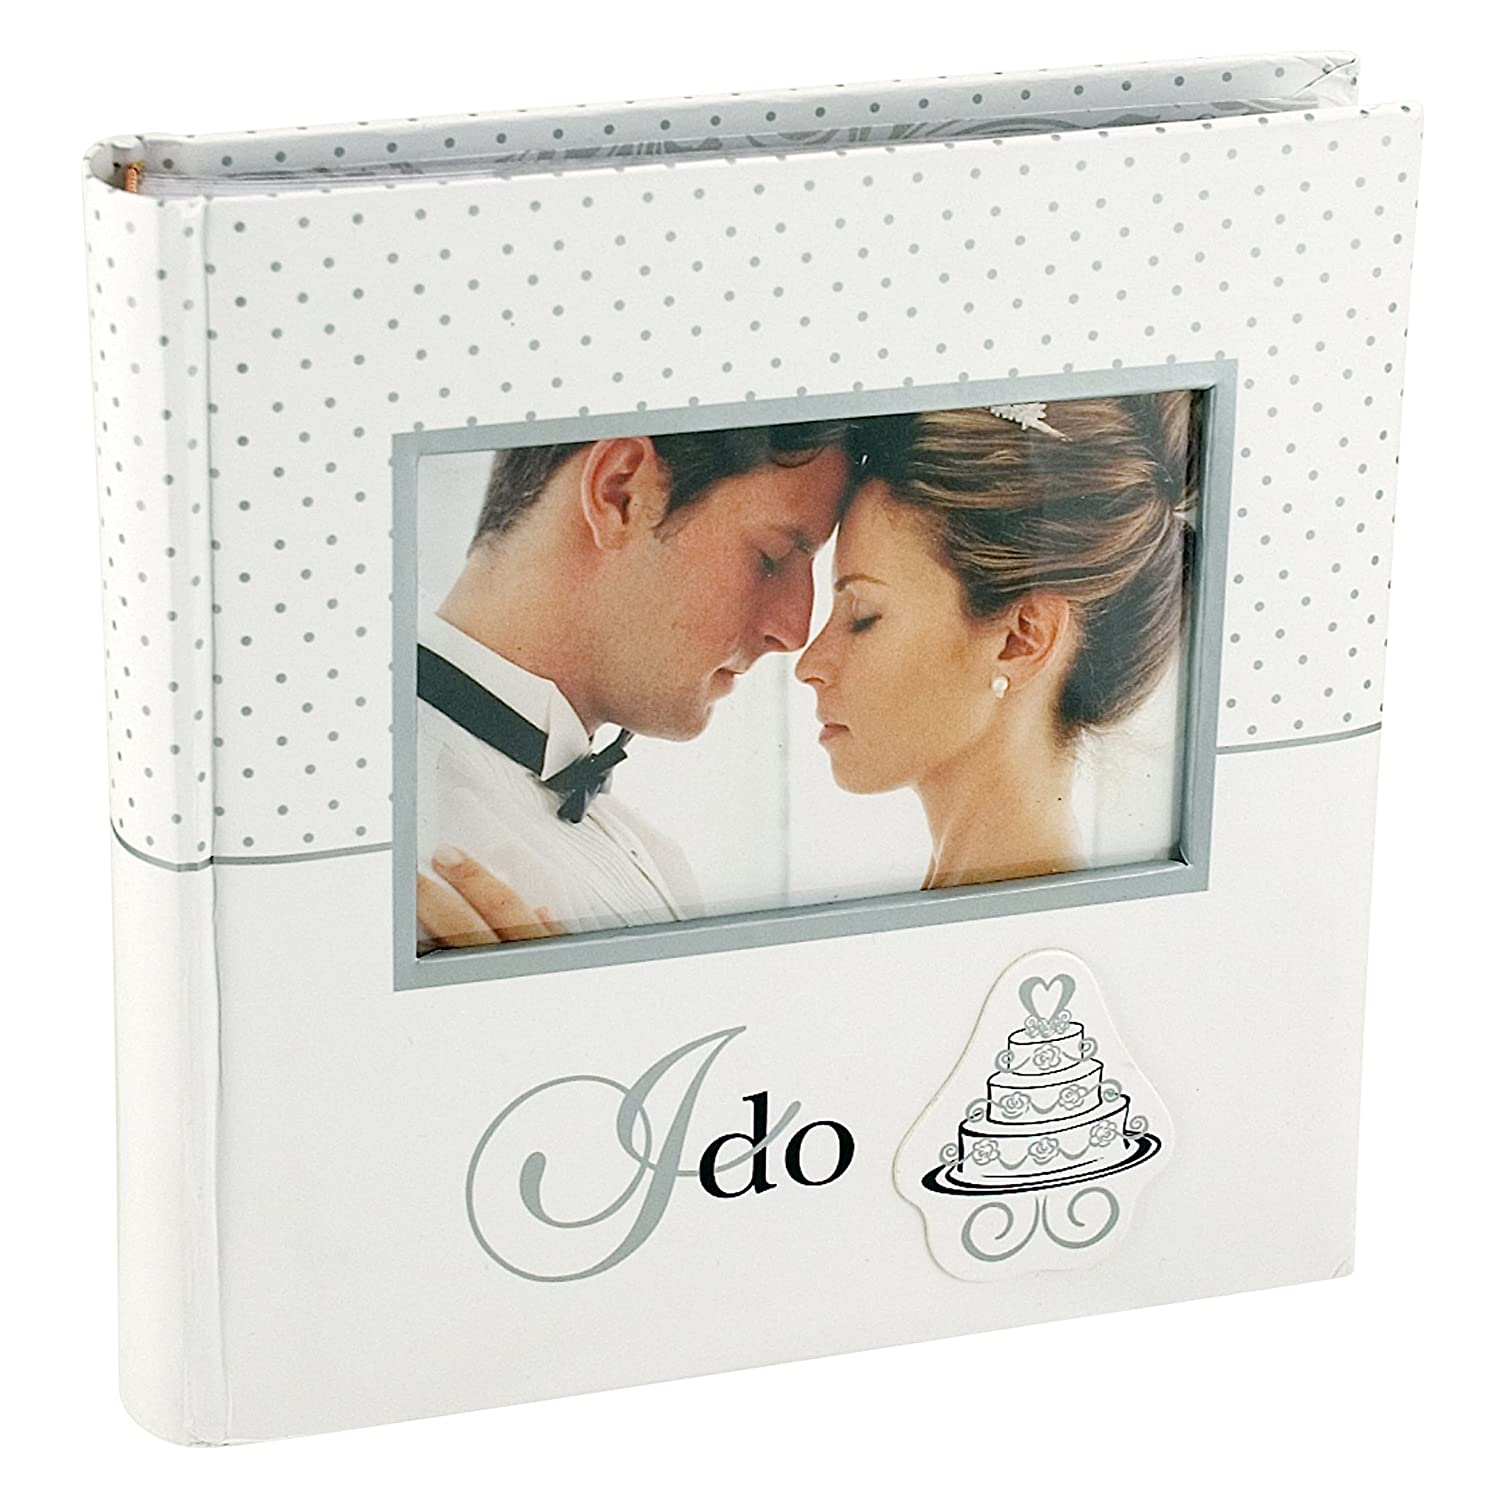 Malden International Designs I Do With Photo Opening Cover & Memo Space Photo Album, 1-Up, 100-4x6, White 6794-16